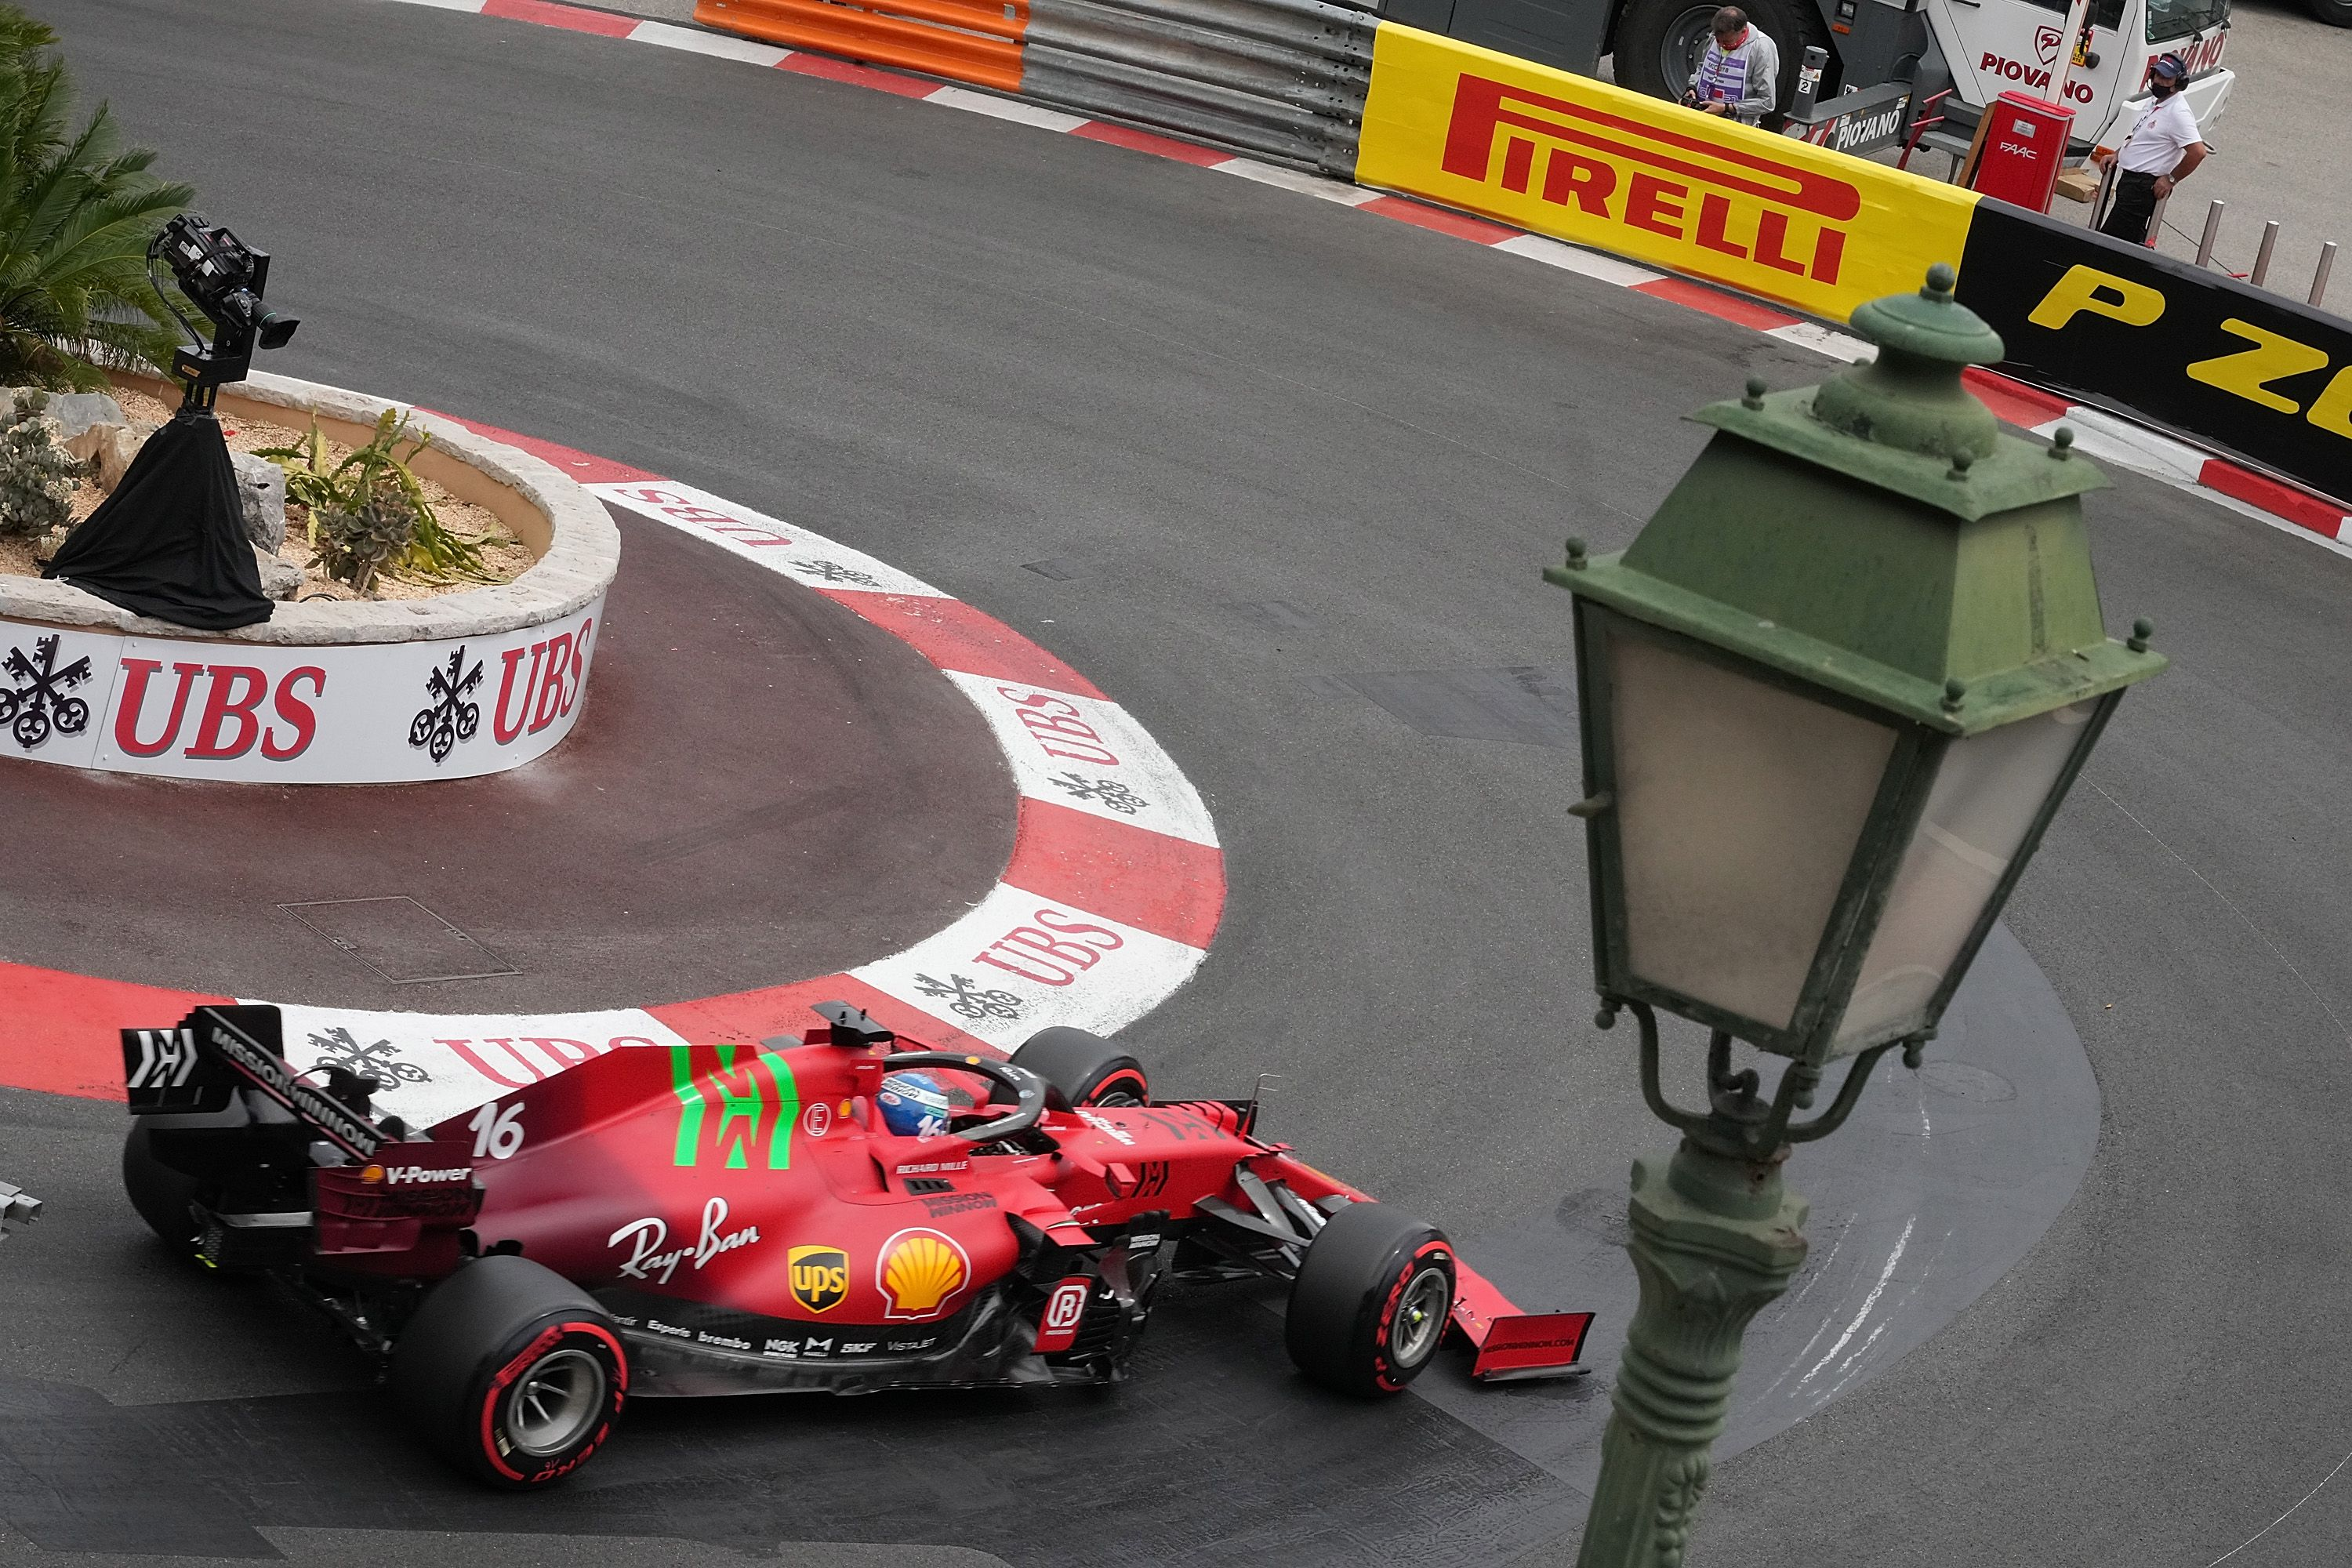 Ferrari Once Again Pulls Mission Winnow's Totally-Not-Tobacco Logos Off its F1 Cars